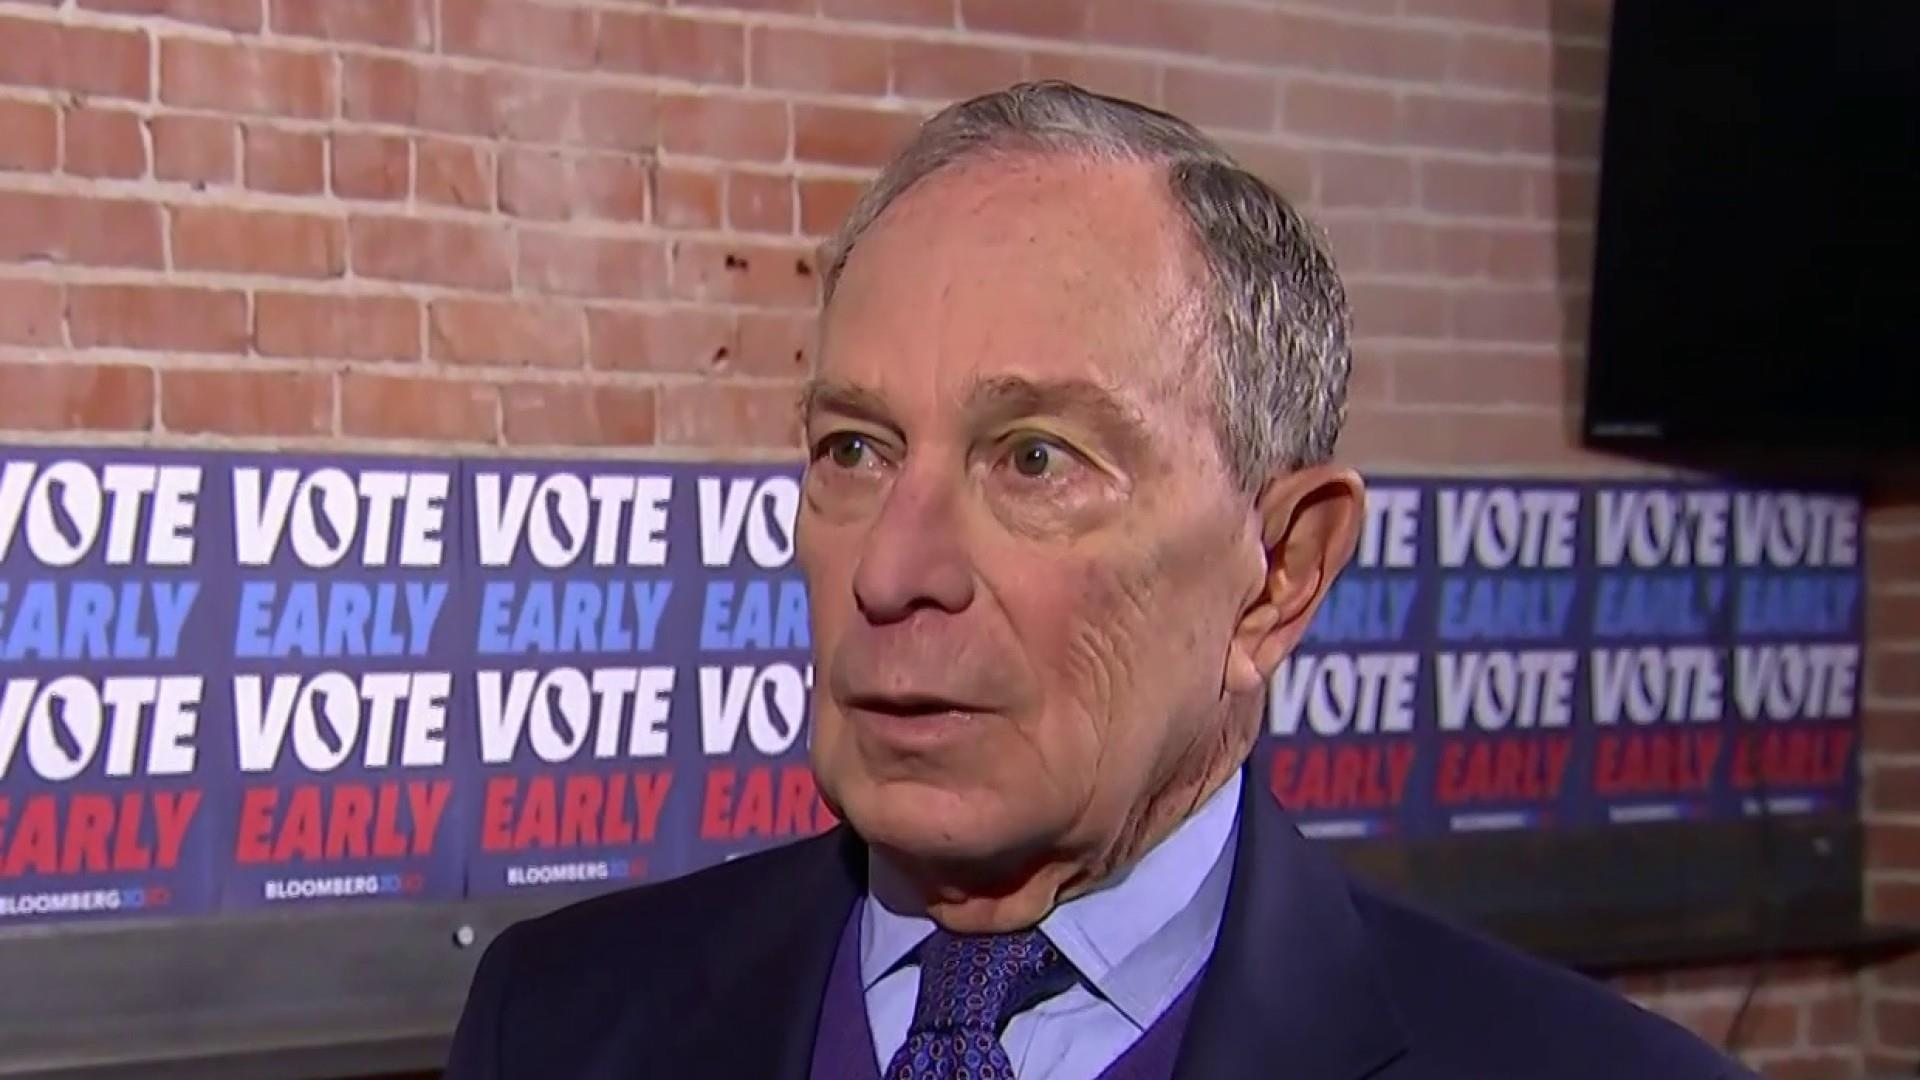 Bloomberg storms to the center of the 2020 presidential fray